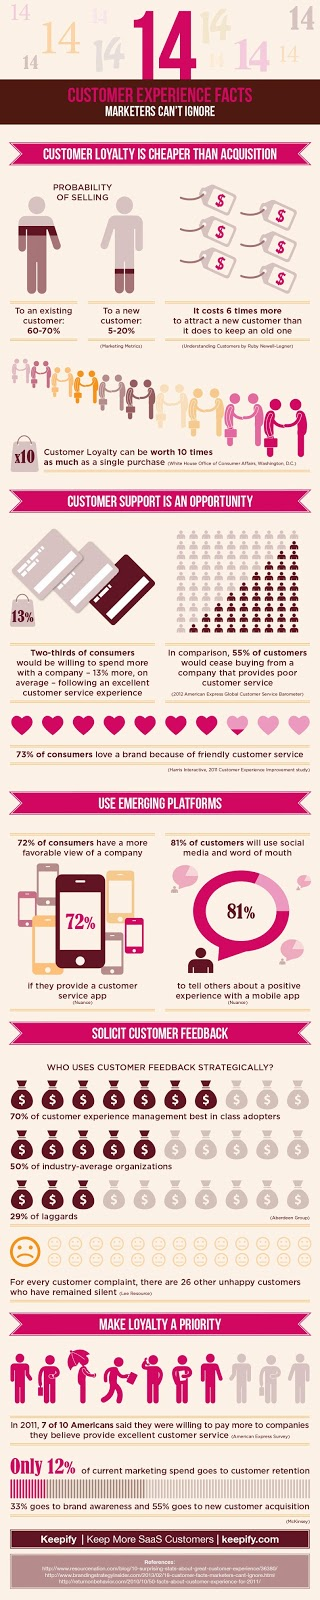 http://keepify.com/retention/2013/11/05/14-customer-experience-facts-marketers-cant-ignore/